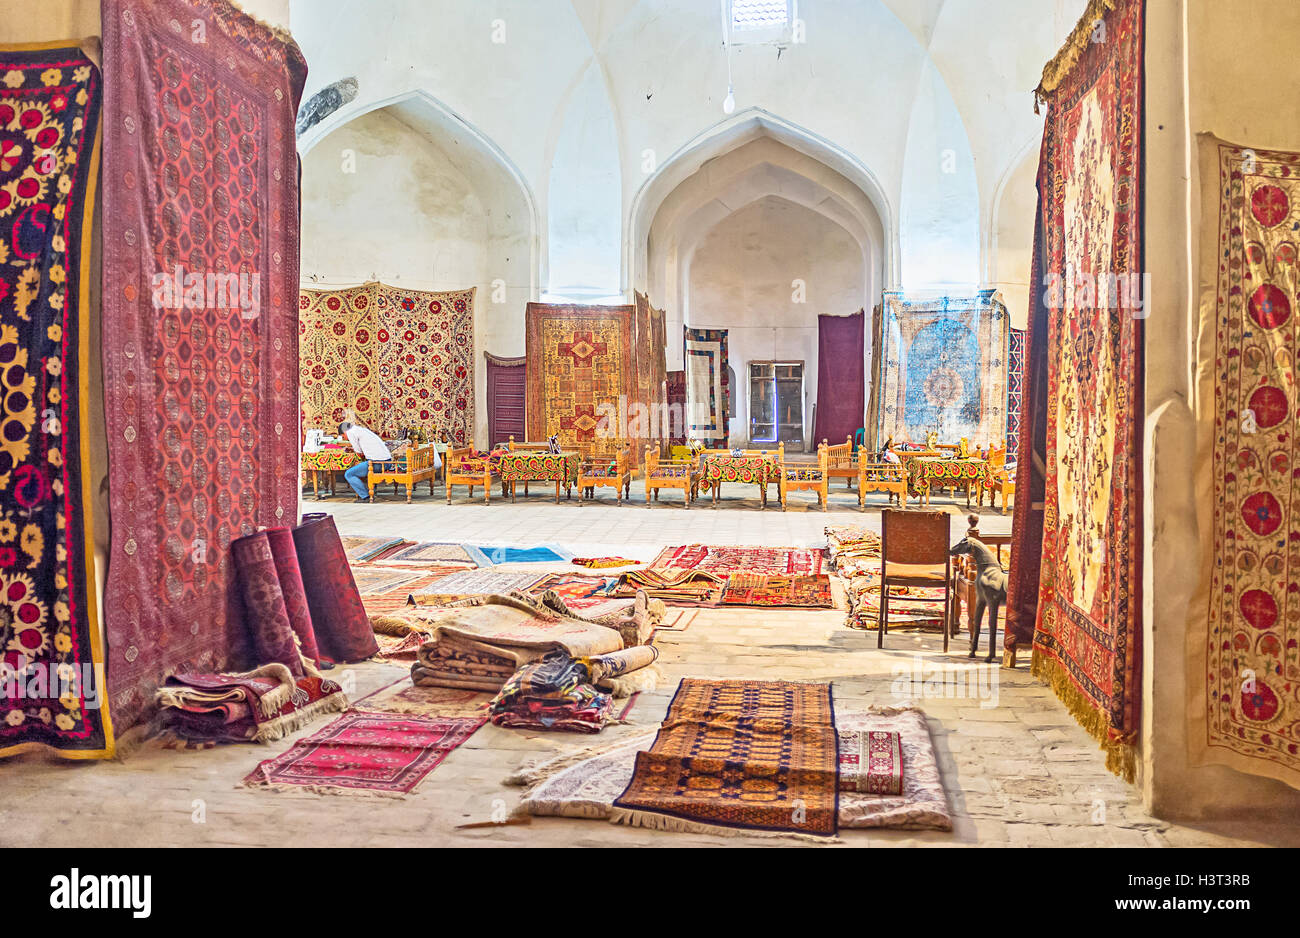 the tiny cafe in the middle of the trading dome surrounded by the numerous carpets and other traditional goods in bukhara